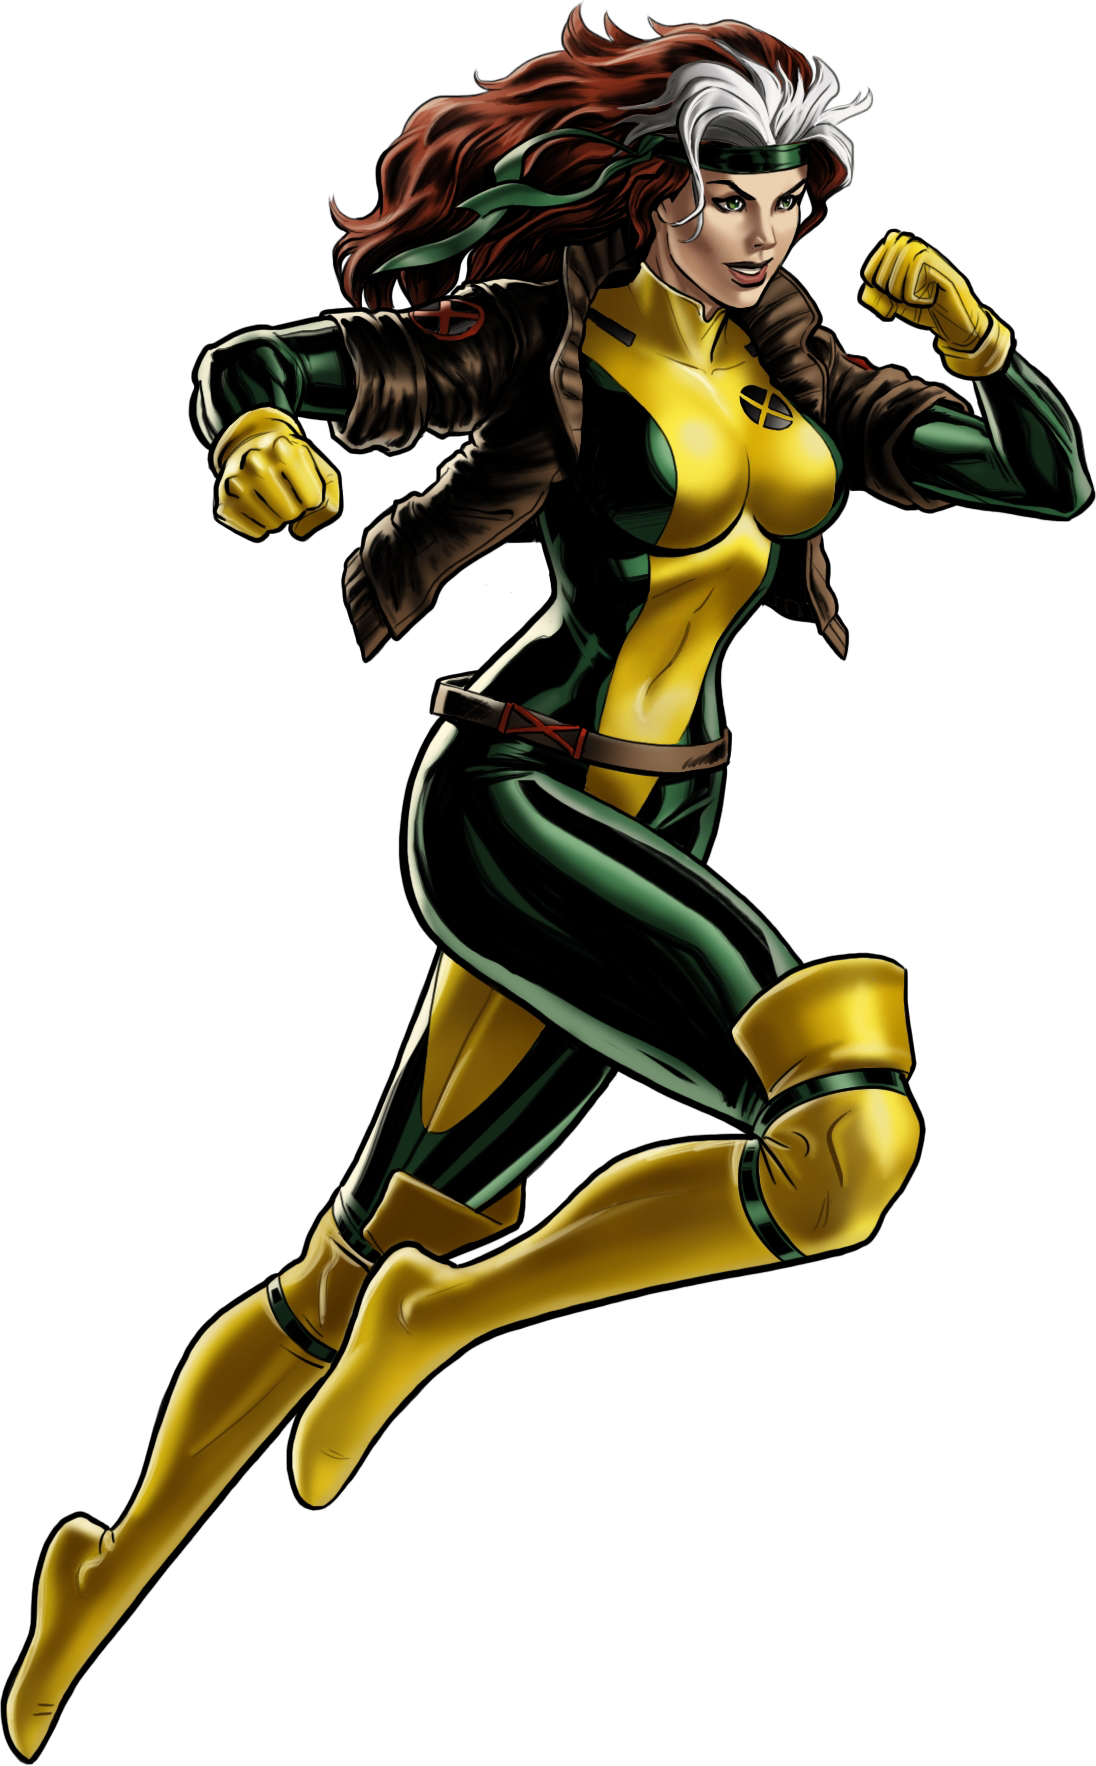 Comic book superhero clipart graphic free library Image - Rogue (Anna Marie) (Earth-12131) from Marvel Avengers ... graphic free library